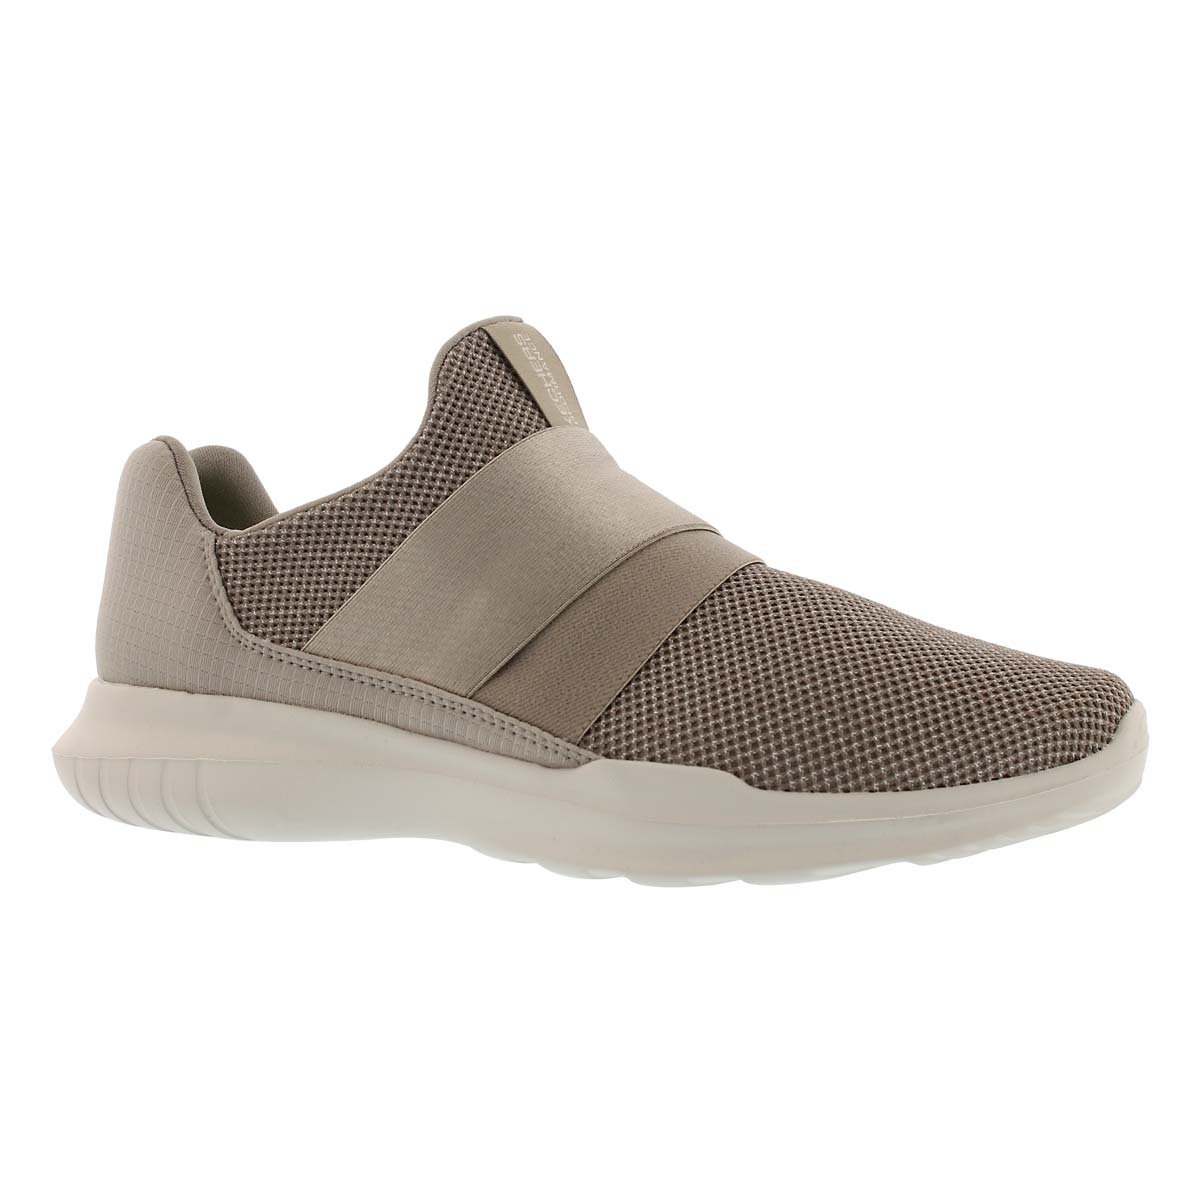 Women's GO RUN MOJO MANIA taupe slip on sneakers